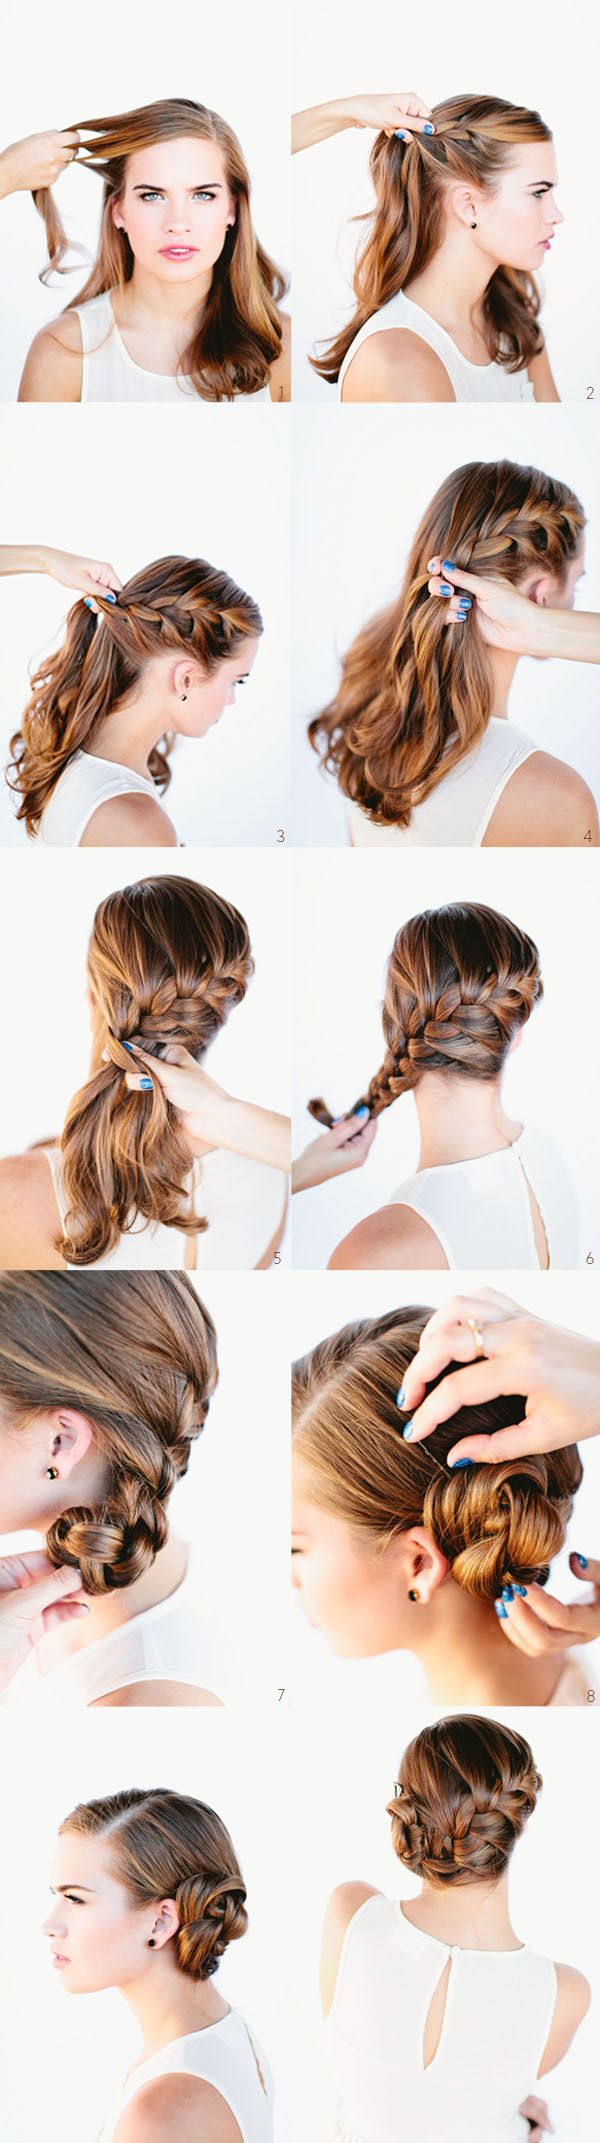 FRENCH-BRAID-BUN-HAIR   #hair tutorials #hairstyle tutorials